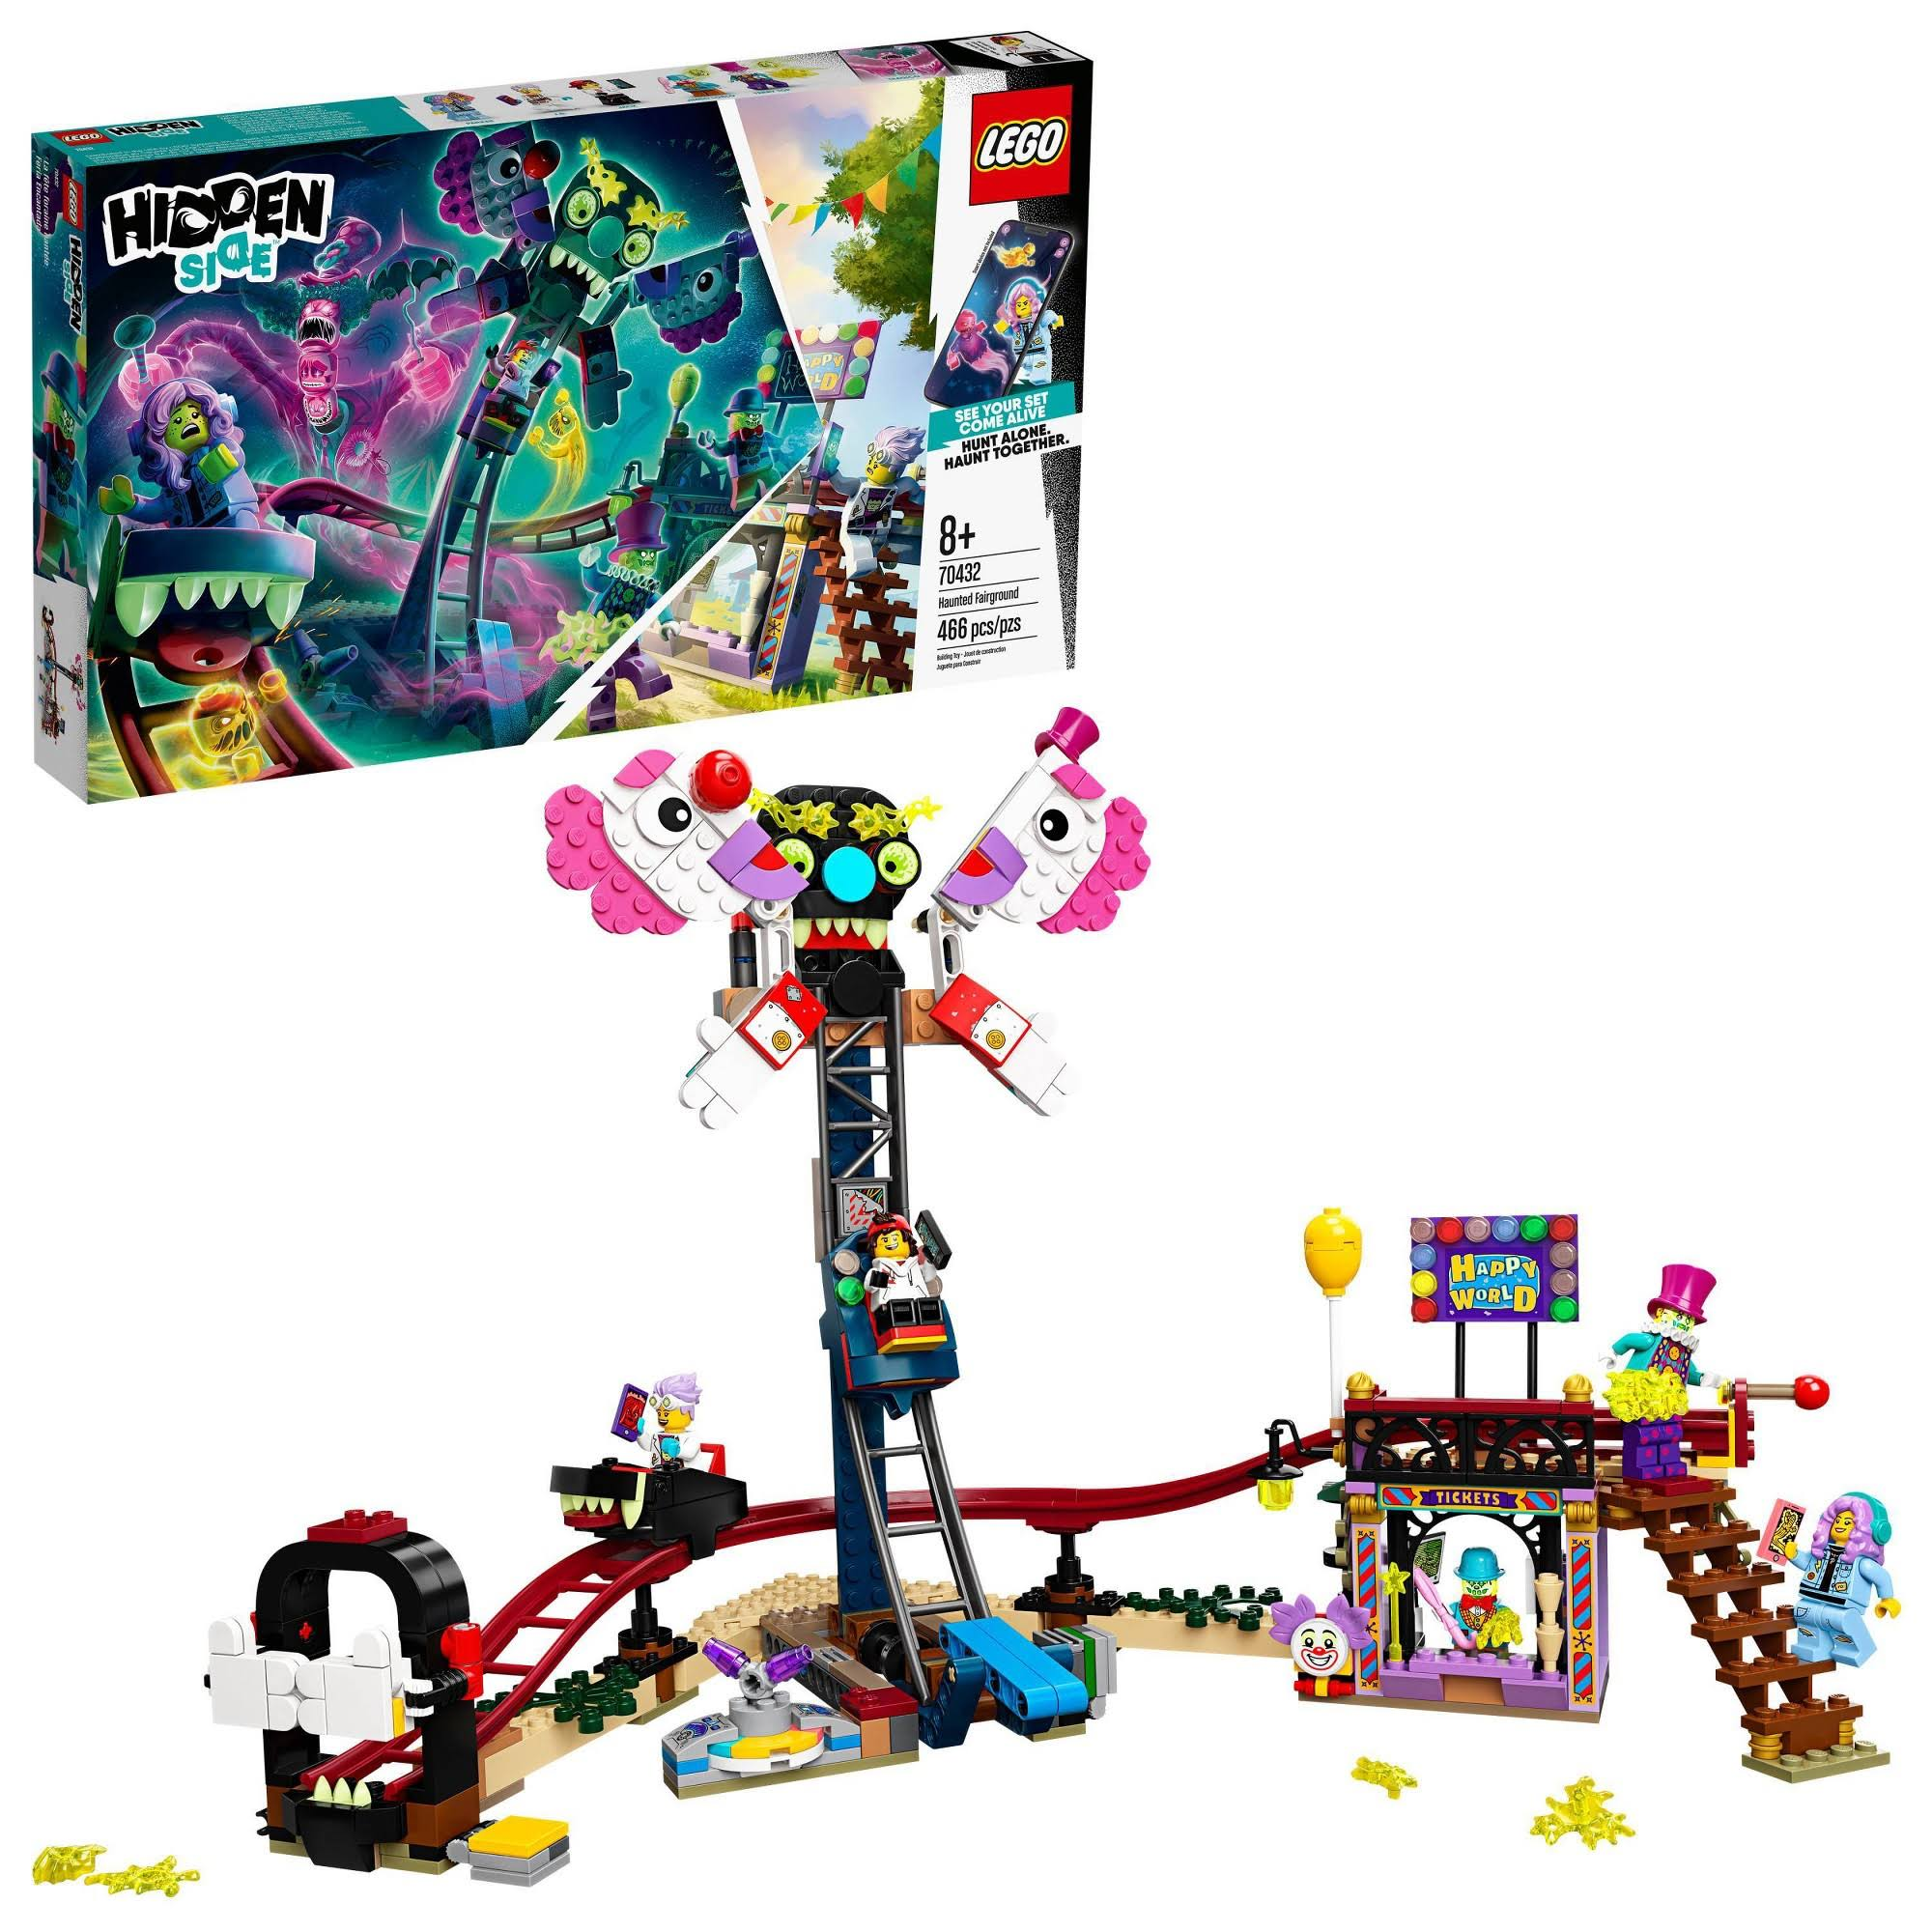 Lego Hidden Side - Haunted Fairground 70432